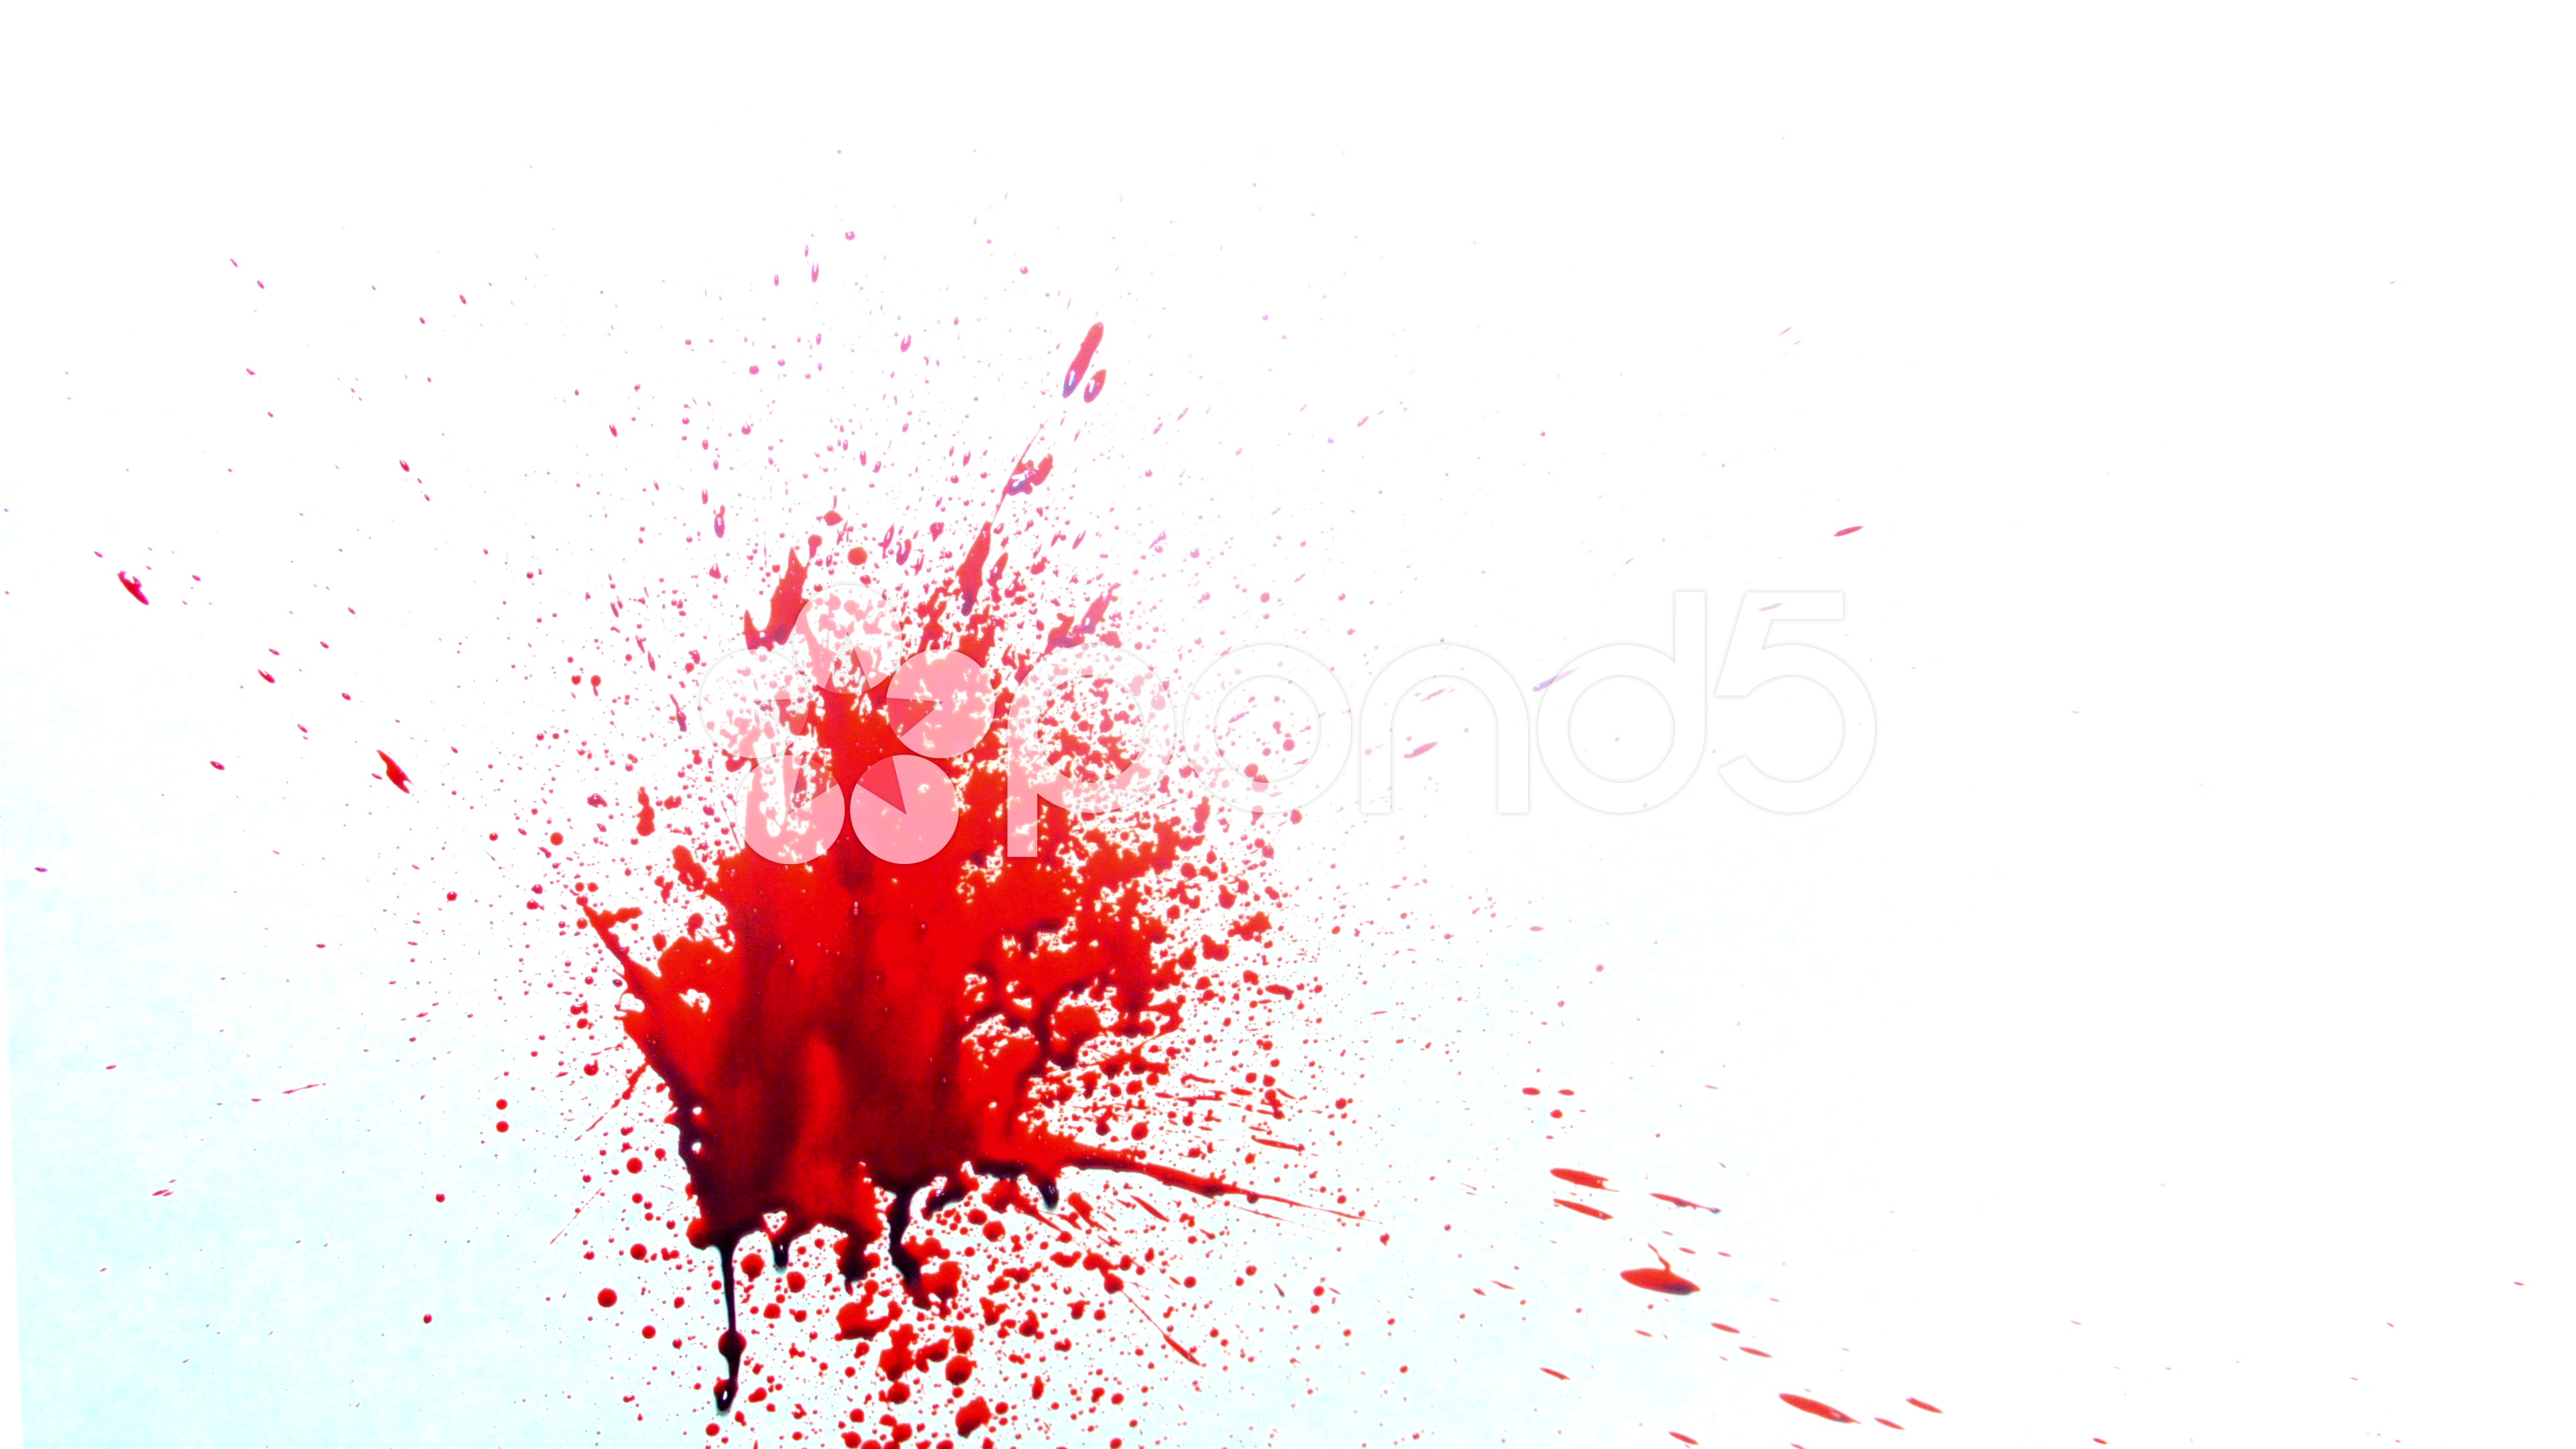 Blood Paint Effect Wall